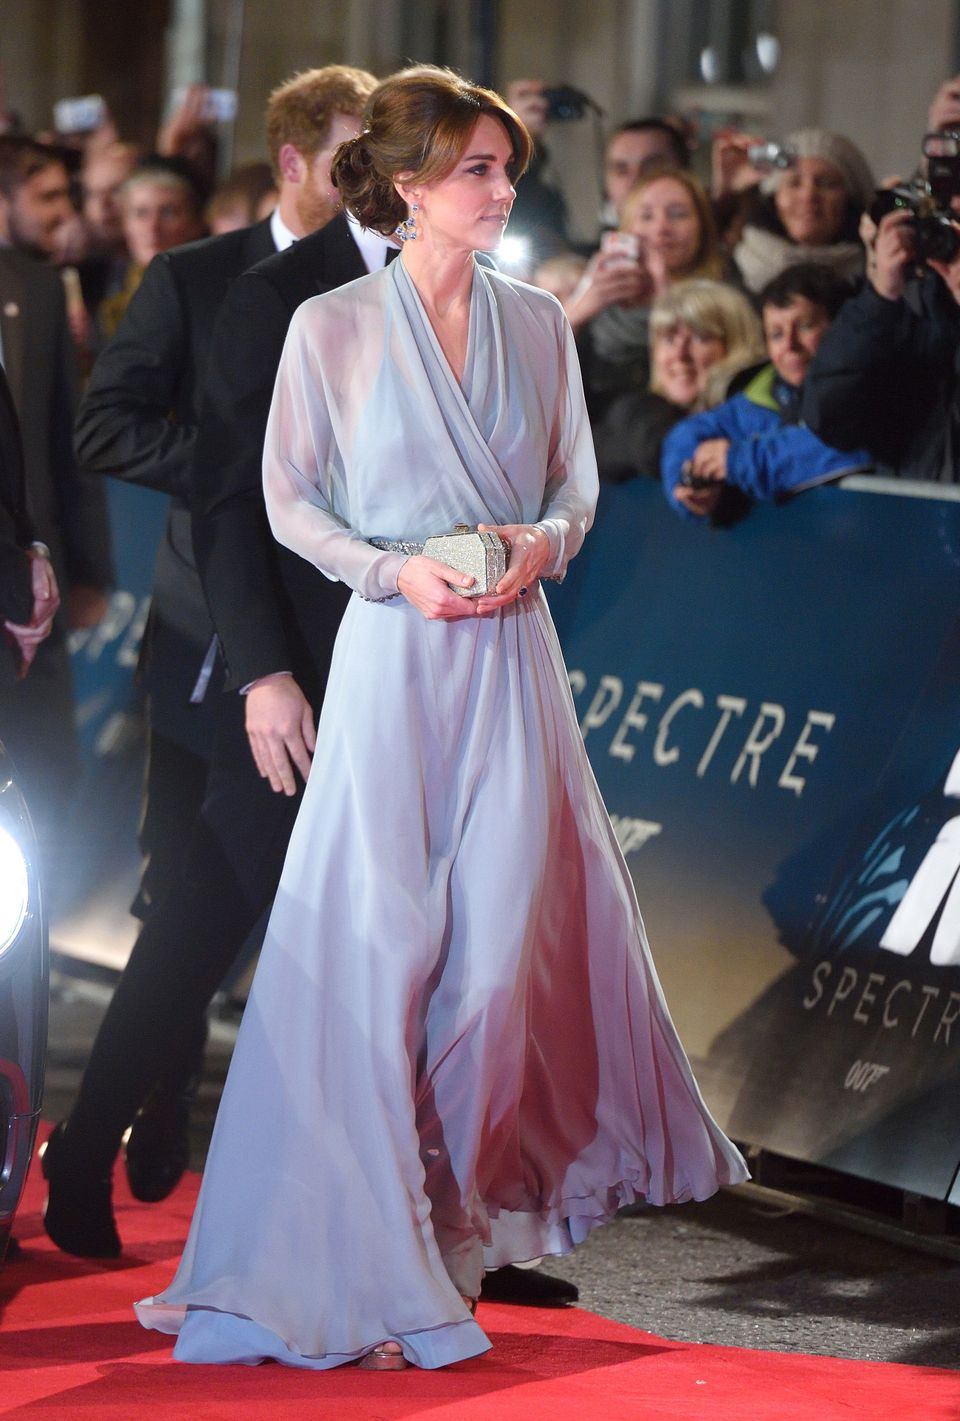 The Duchess of Cambridge looked a vision in an ice-blue Jenny Packham gown at the London premiere of 'Spectre' on October 26,